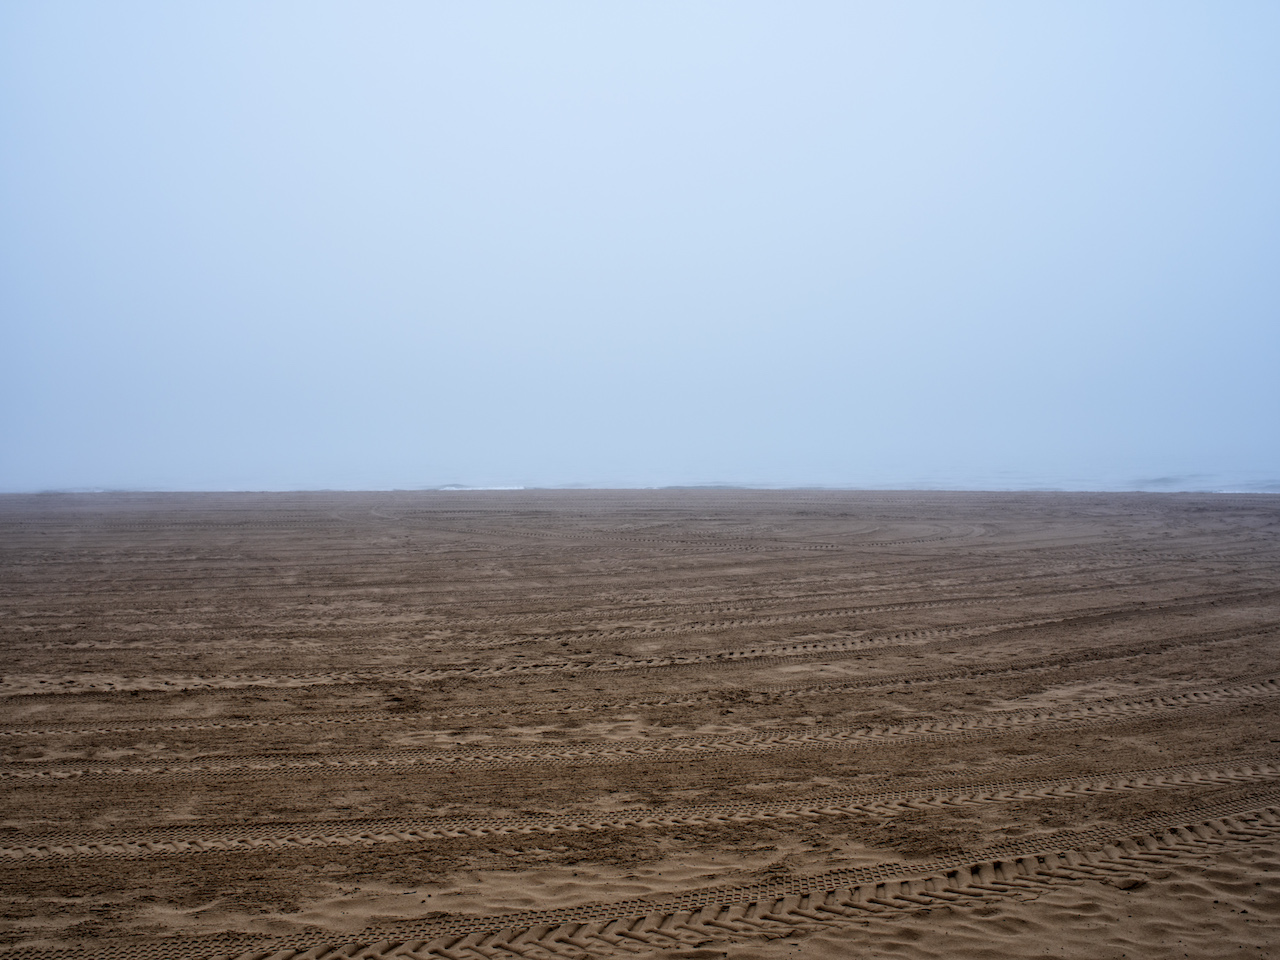 a foggy day with wet sands on Lake Michigan, with tracks of various machines and people